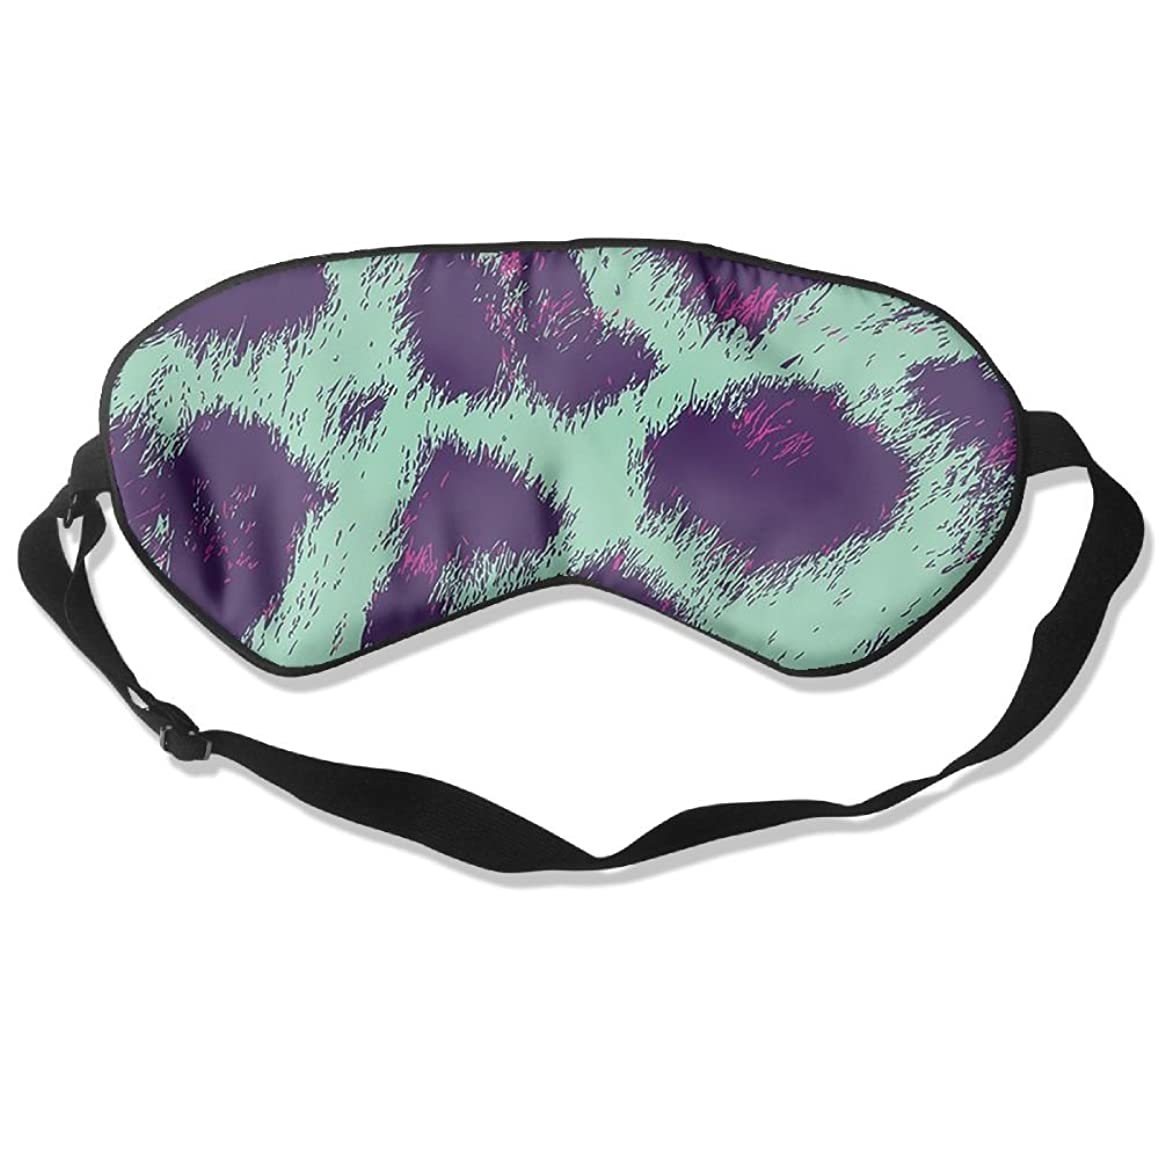 Sleep Mask Peels Eye Cover Blackout Eye Masks,Breathable Blindfold